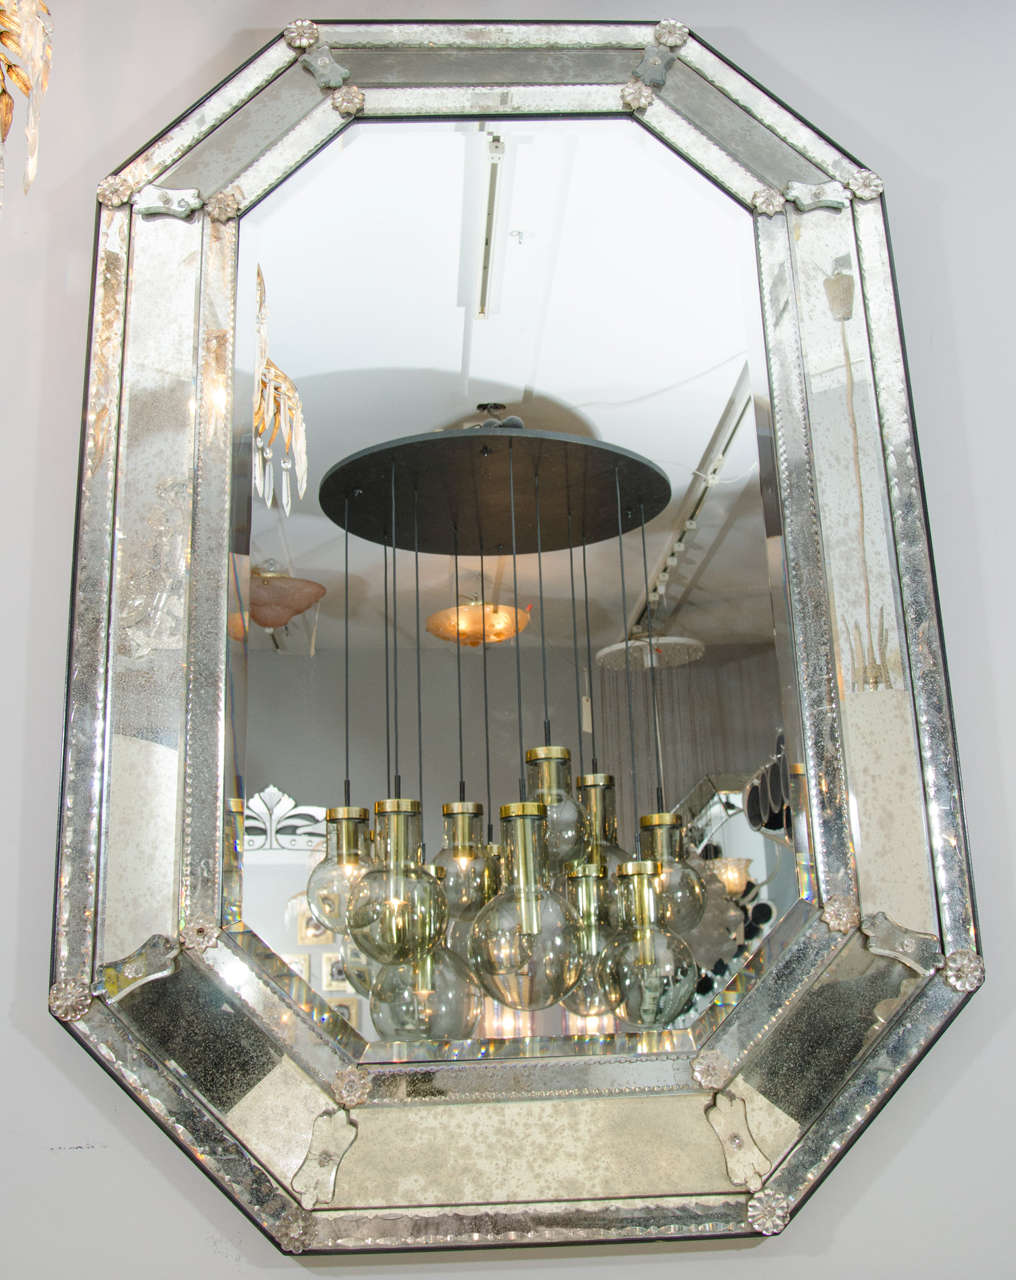 This italian circular wooden wall mirror is no longer available - 1950s Venetian Style Mirror At 1stdibs